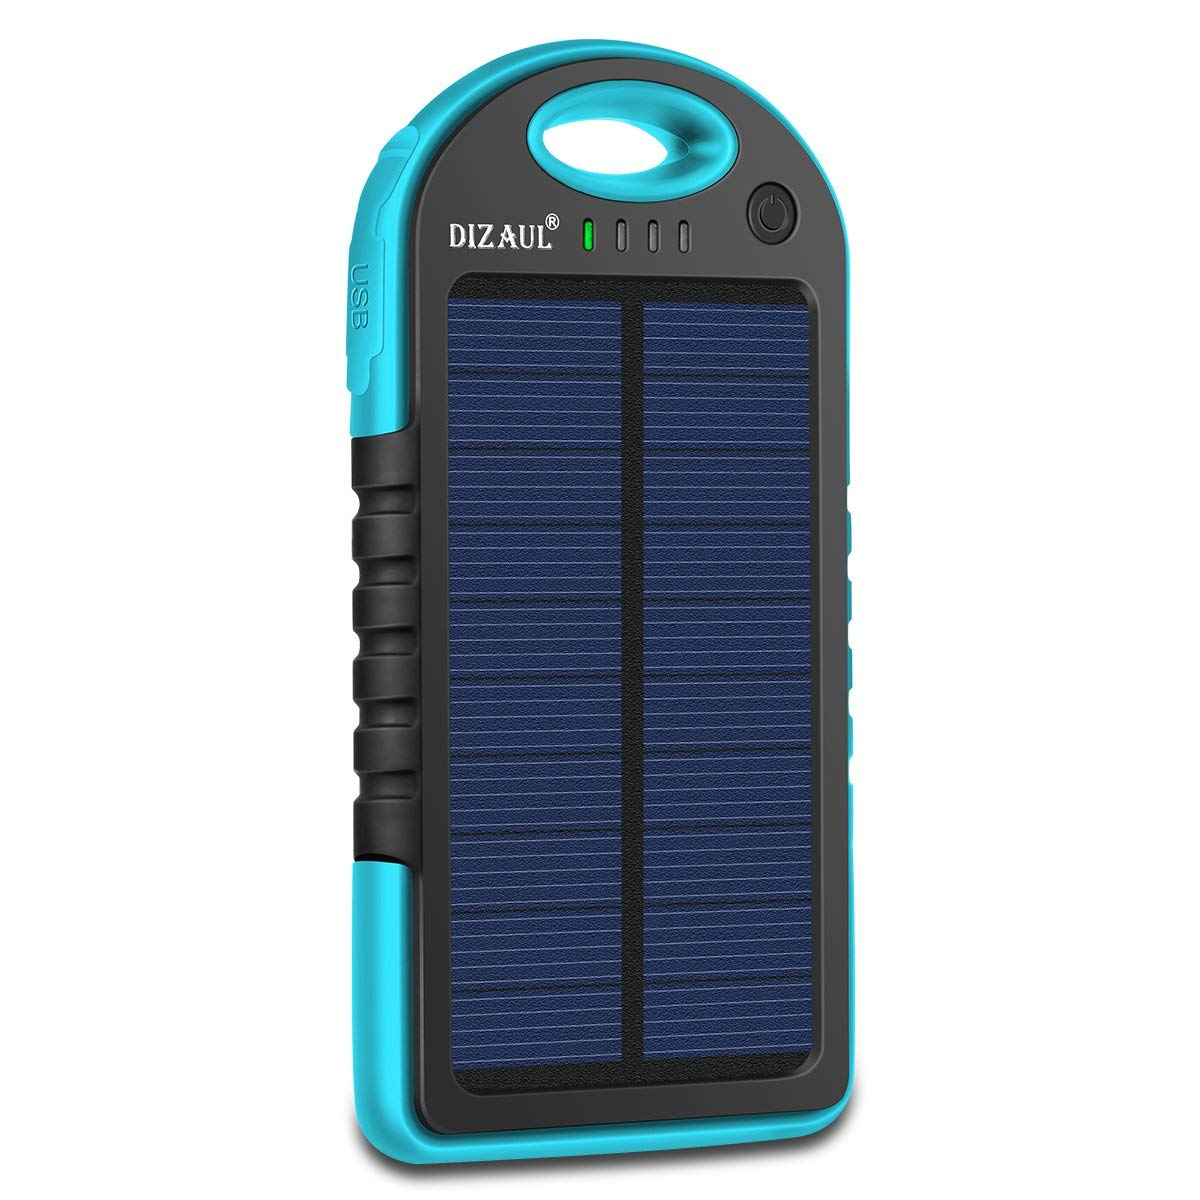 Solar Charger, Dizaul 5000mAh Portable Solar Power Bank Waterproof/Shockproof/Dustproof Dual USB Battery Bank for Cell Phone, Samsung, Android Phones, Windows Phones, GoPro Camera, GPS and More (Blue)